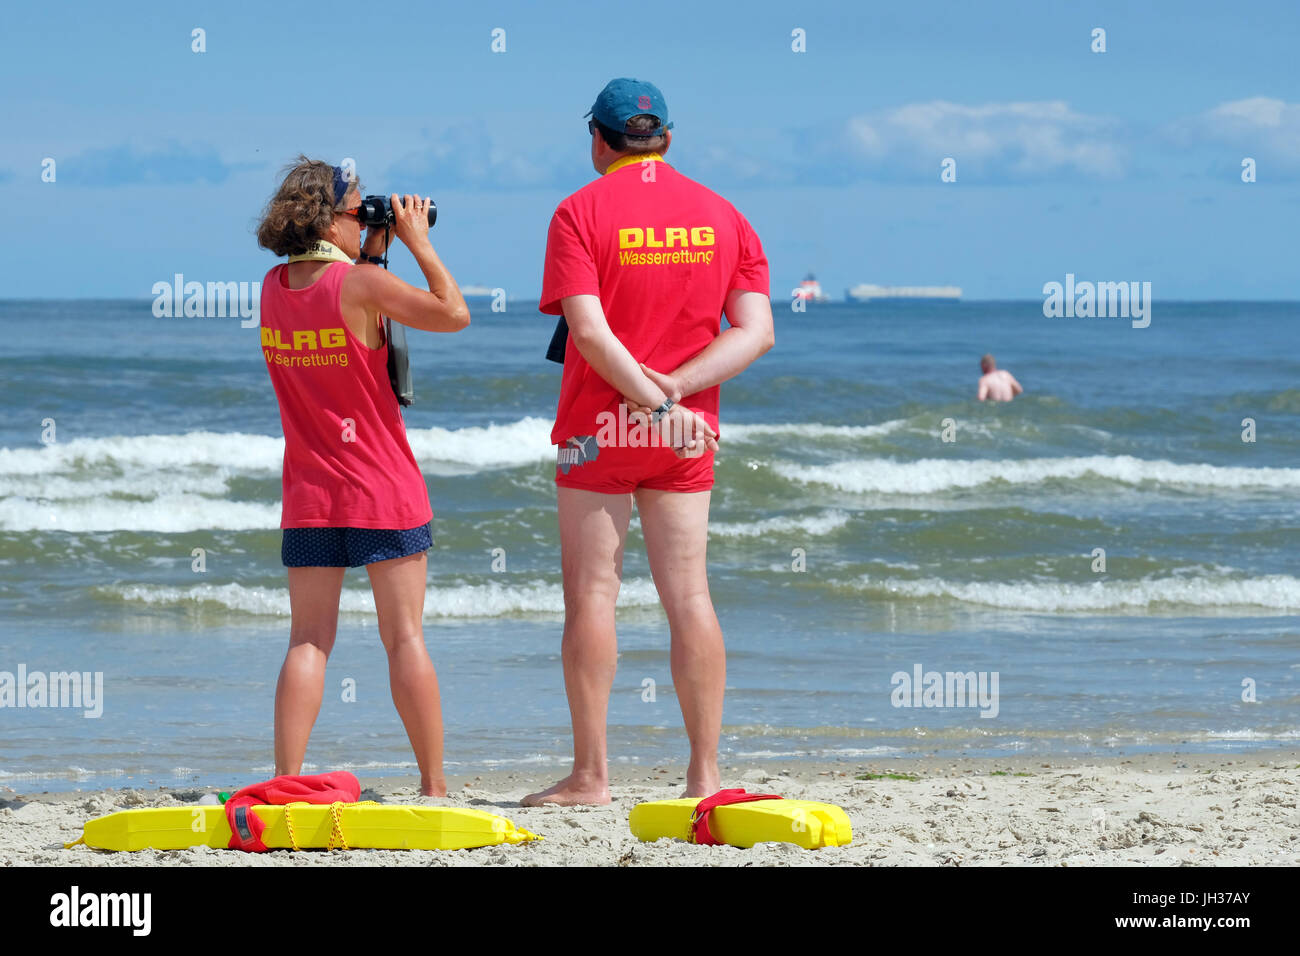 Members of the DLRG German Life Saving Society watch swimmer in the waves of the North Sea on the beach of the island Stock Photo